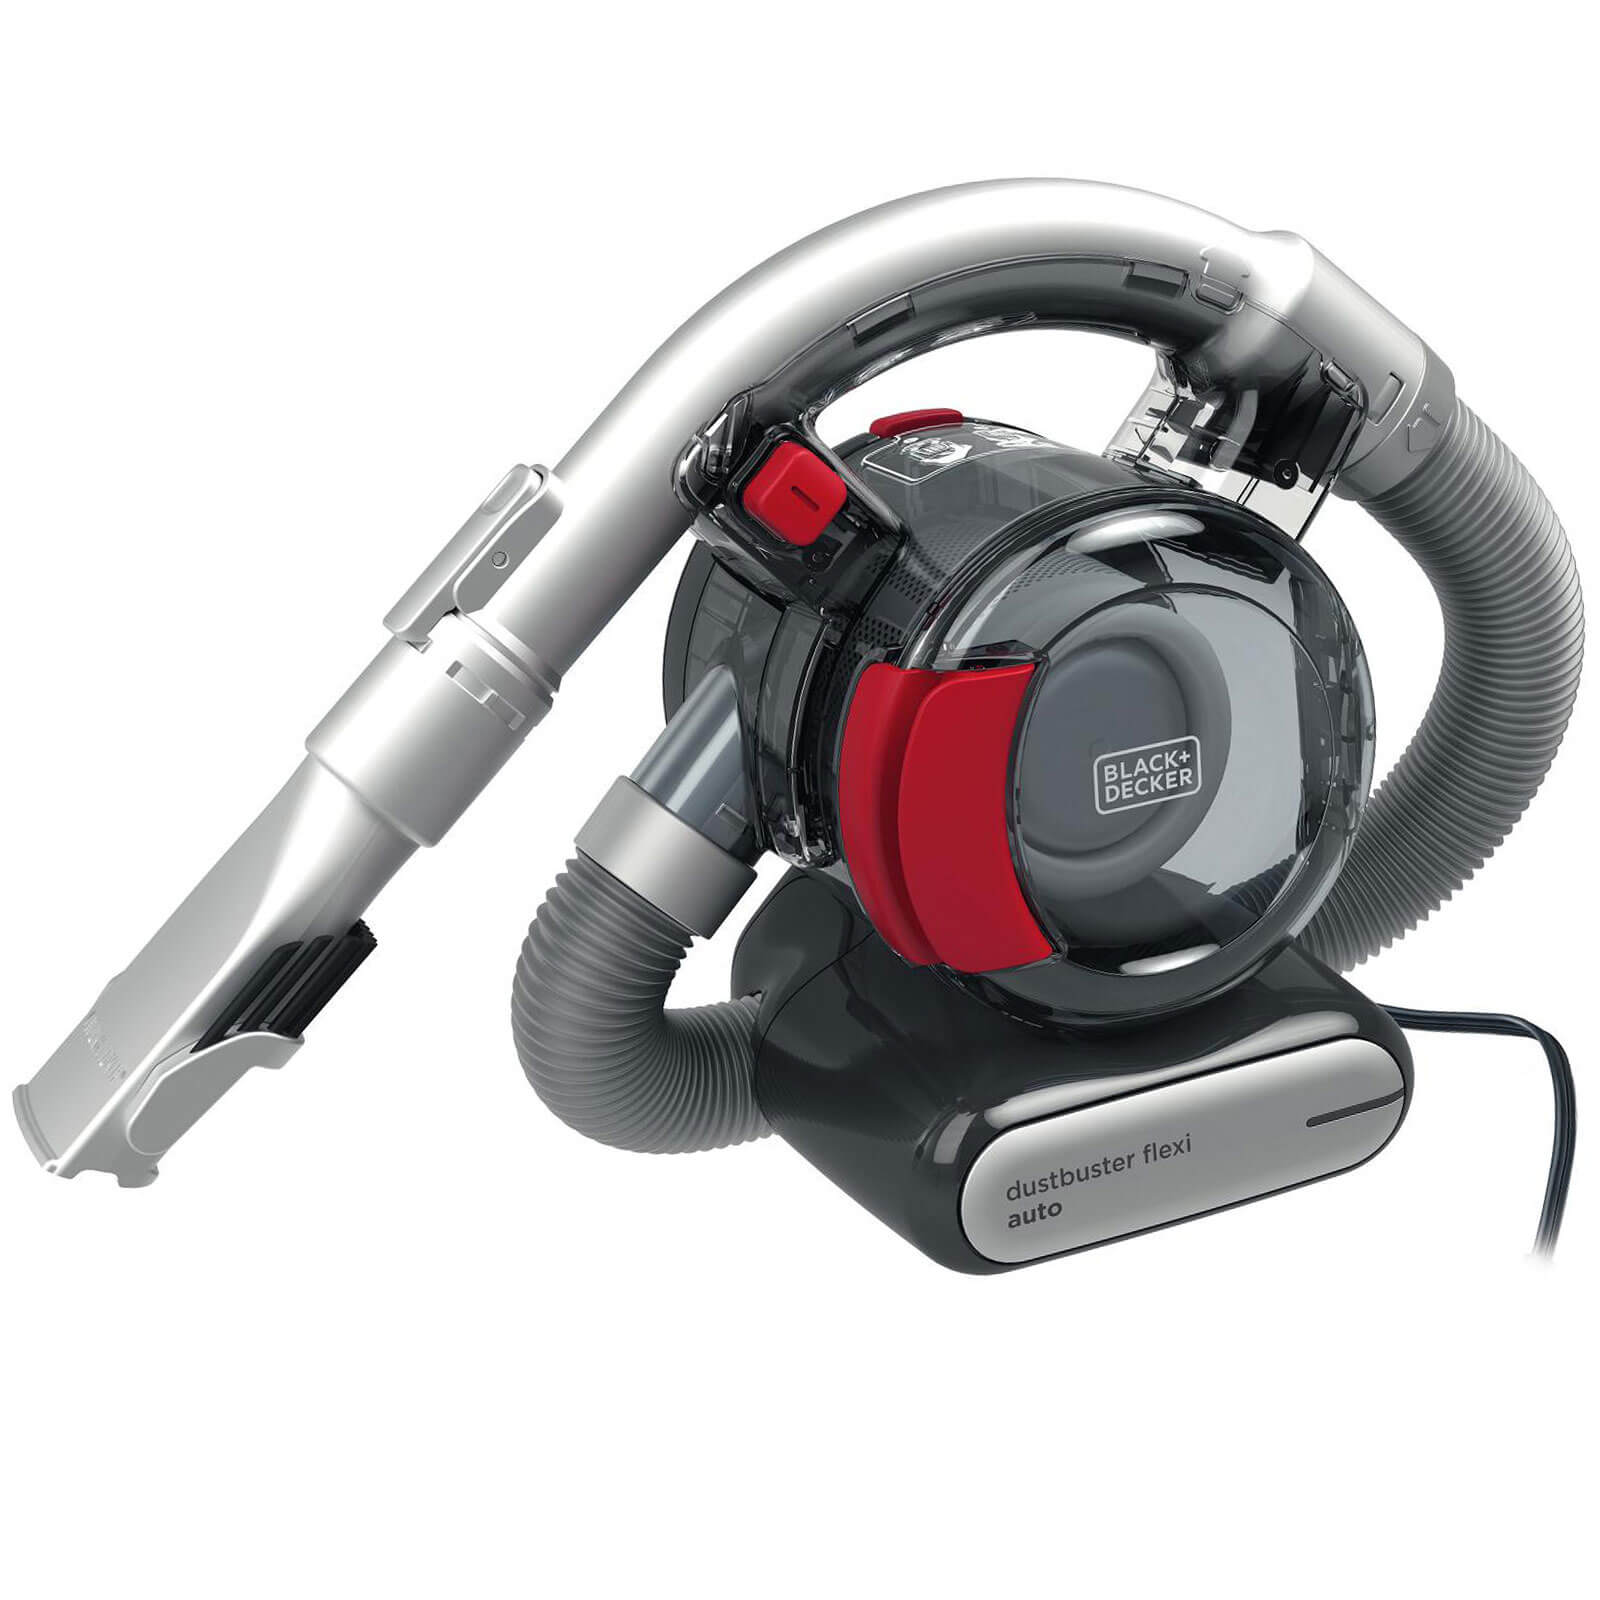 Black and Decker PD1200AV 12v Auto Flexi Car Dustbuster (Not Cordless) 12v